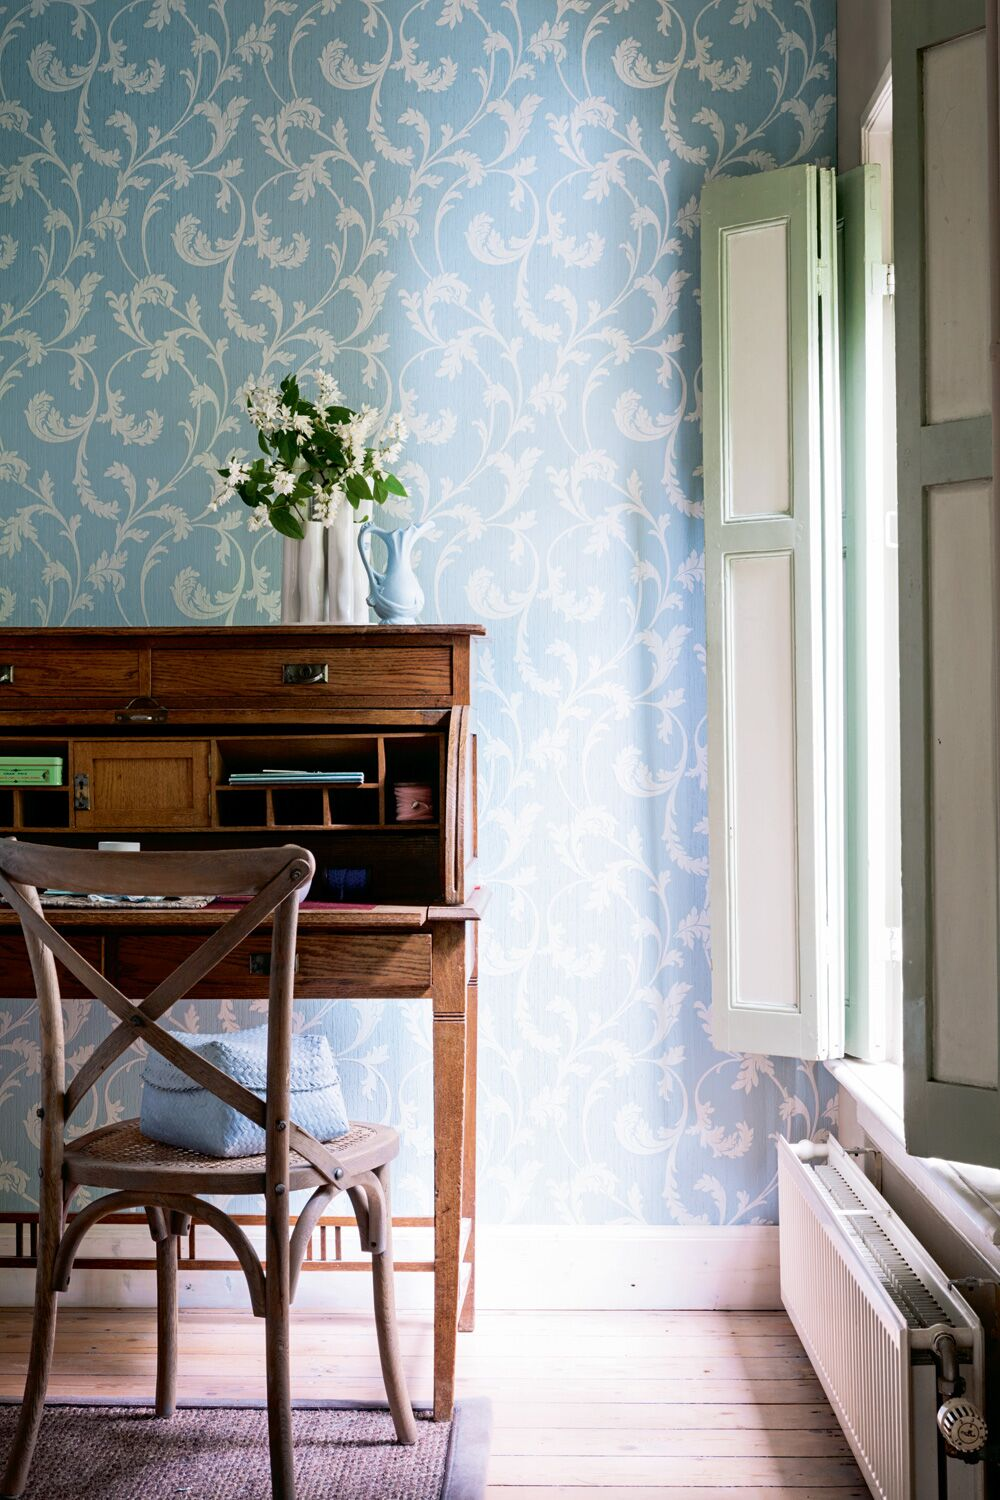 Powder Blue Fable Traditional Floral Wallpaper R2628. Floral Wallpaper.